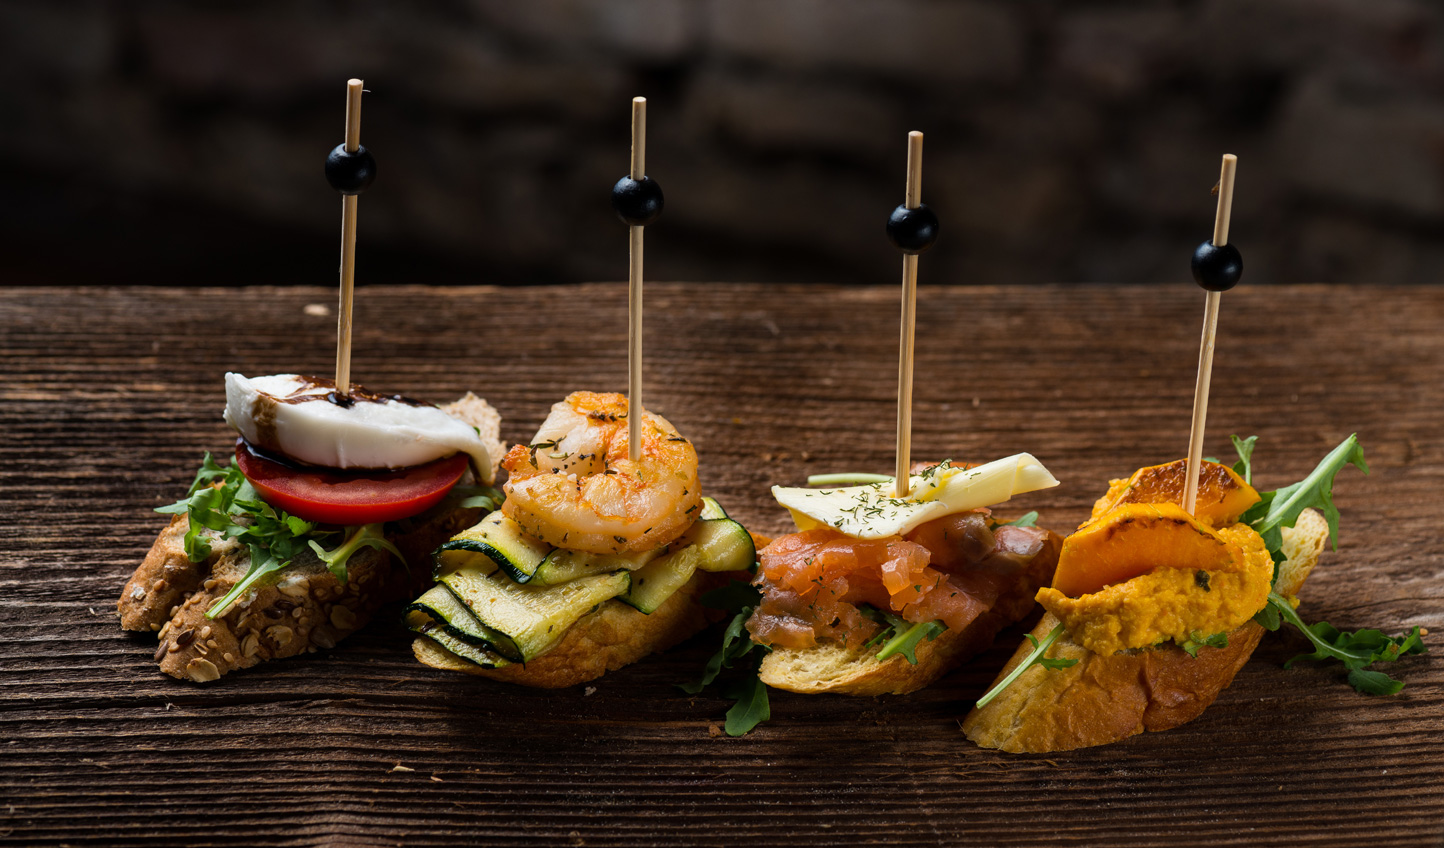 Taste your way through the Basque country like a local on a pintxos tour